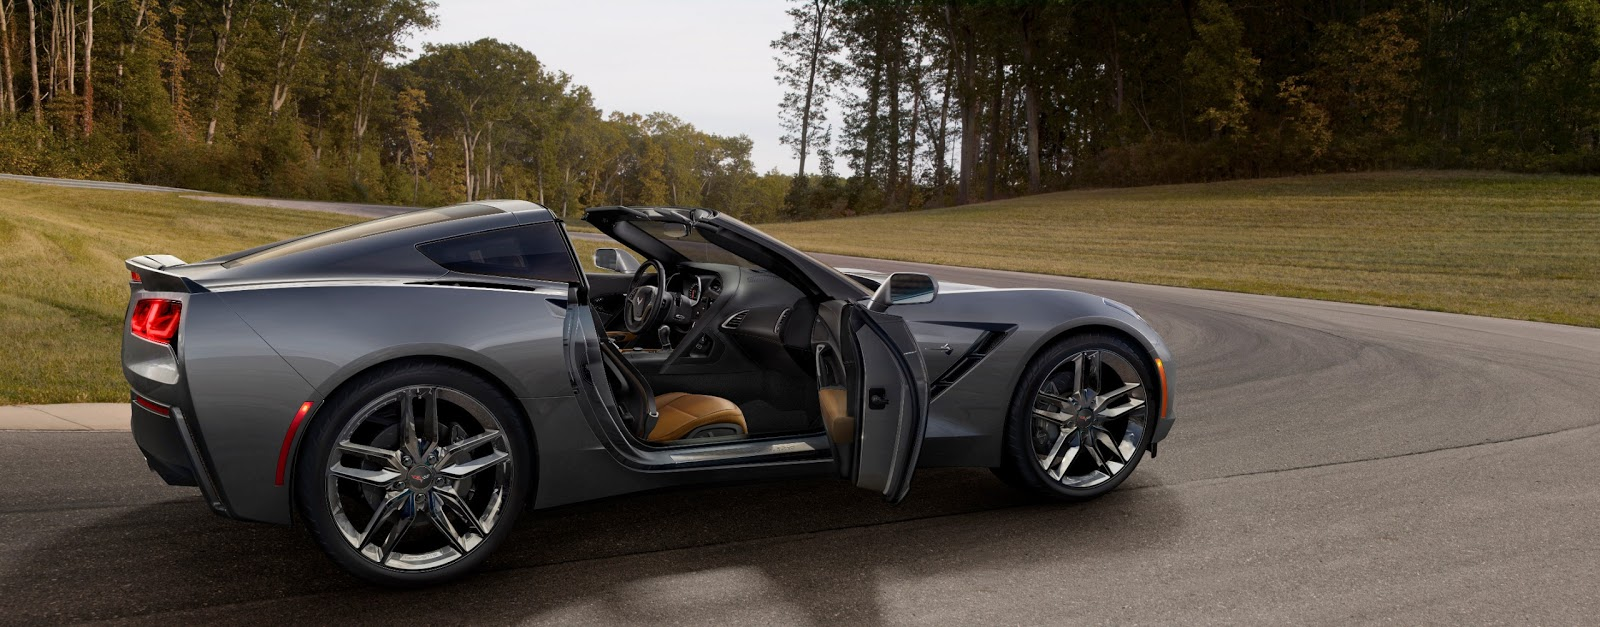 2014 Corvette From Chevrolet